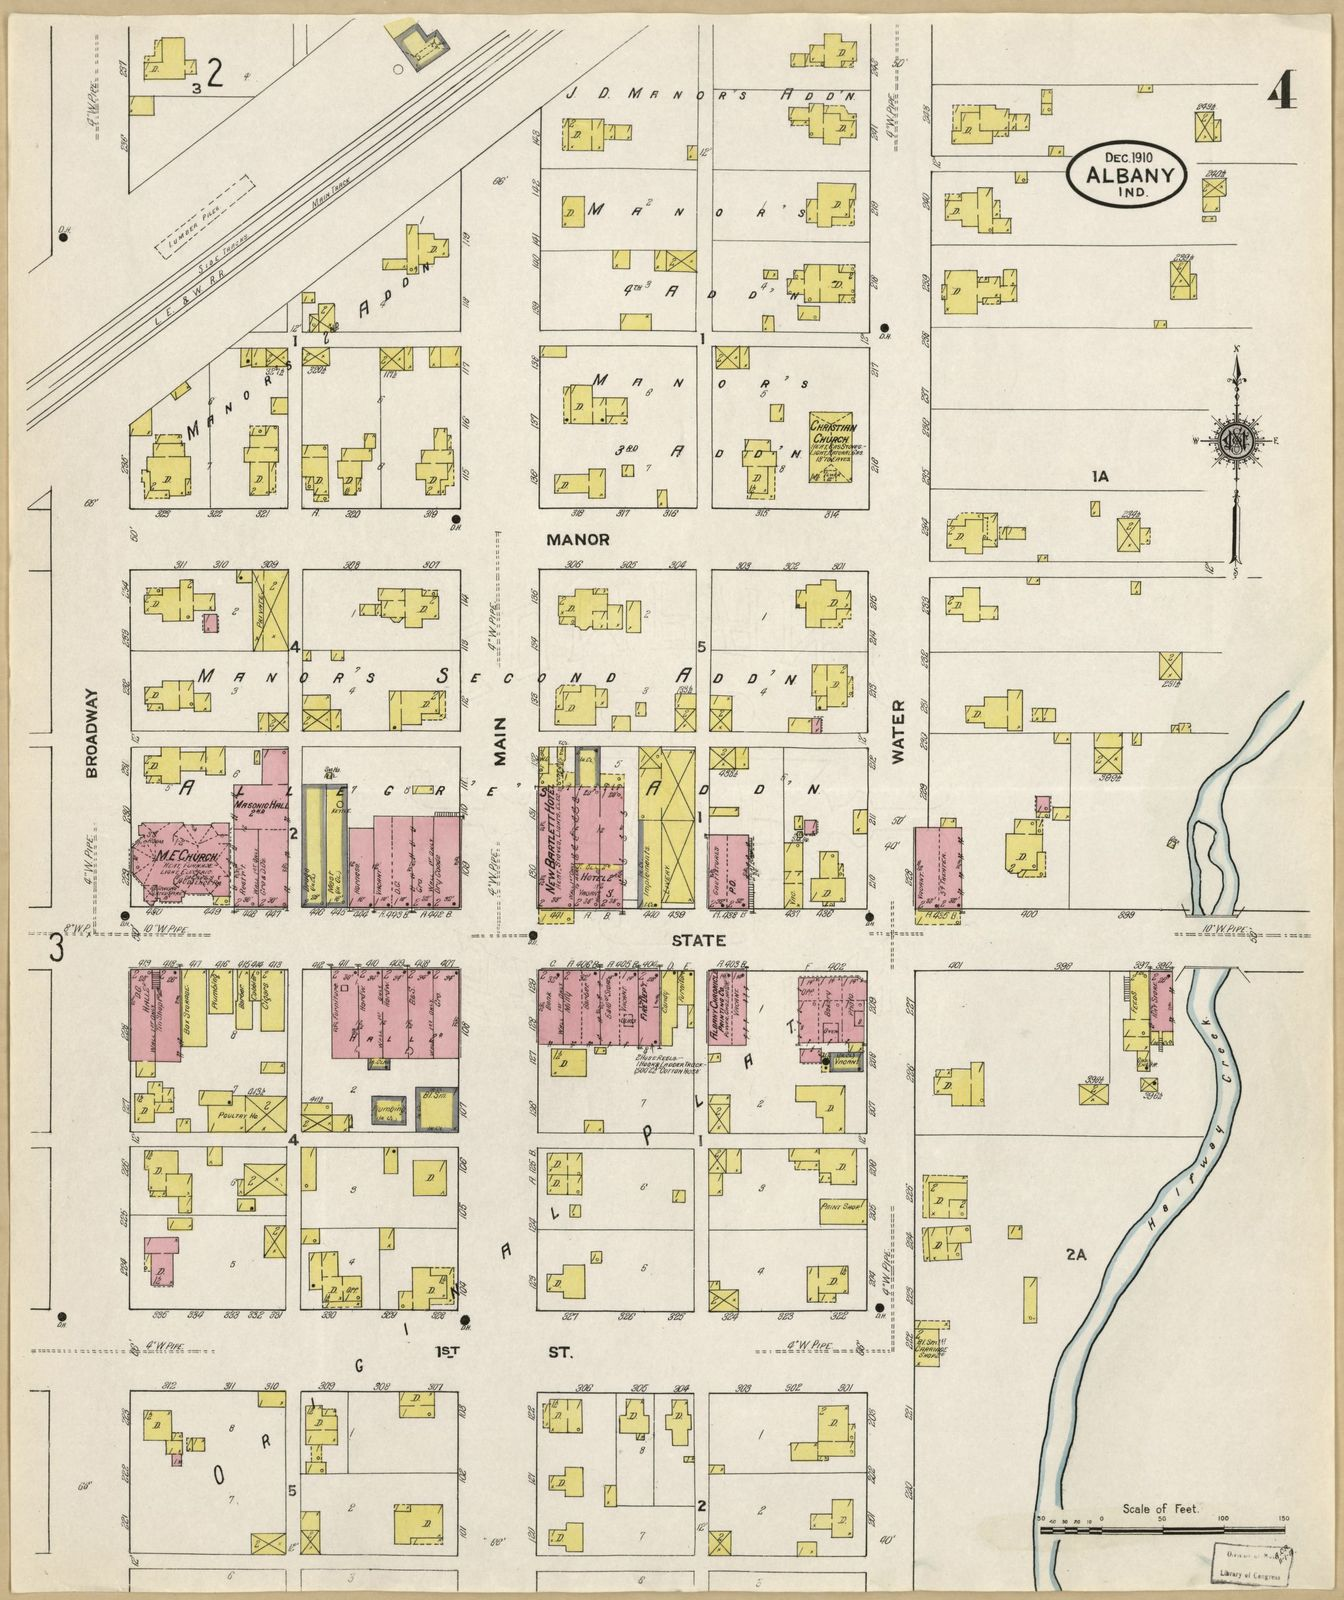 Albany Indiana Map.Sanborn Fire Insurance Map From Albany Delaware County Indiana